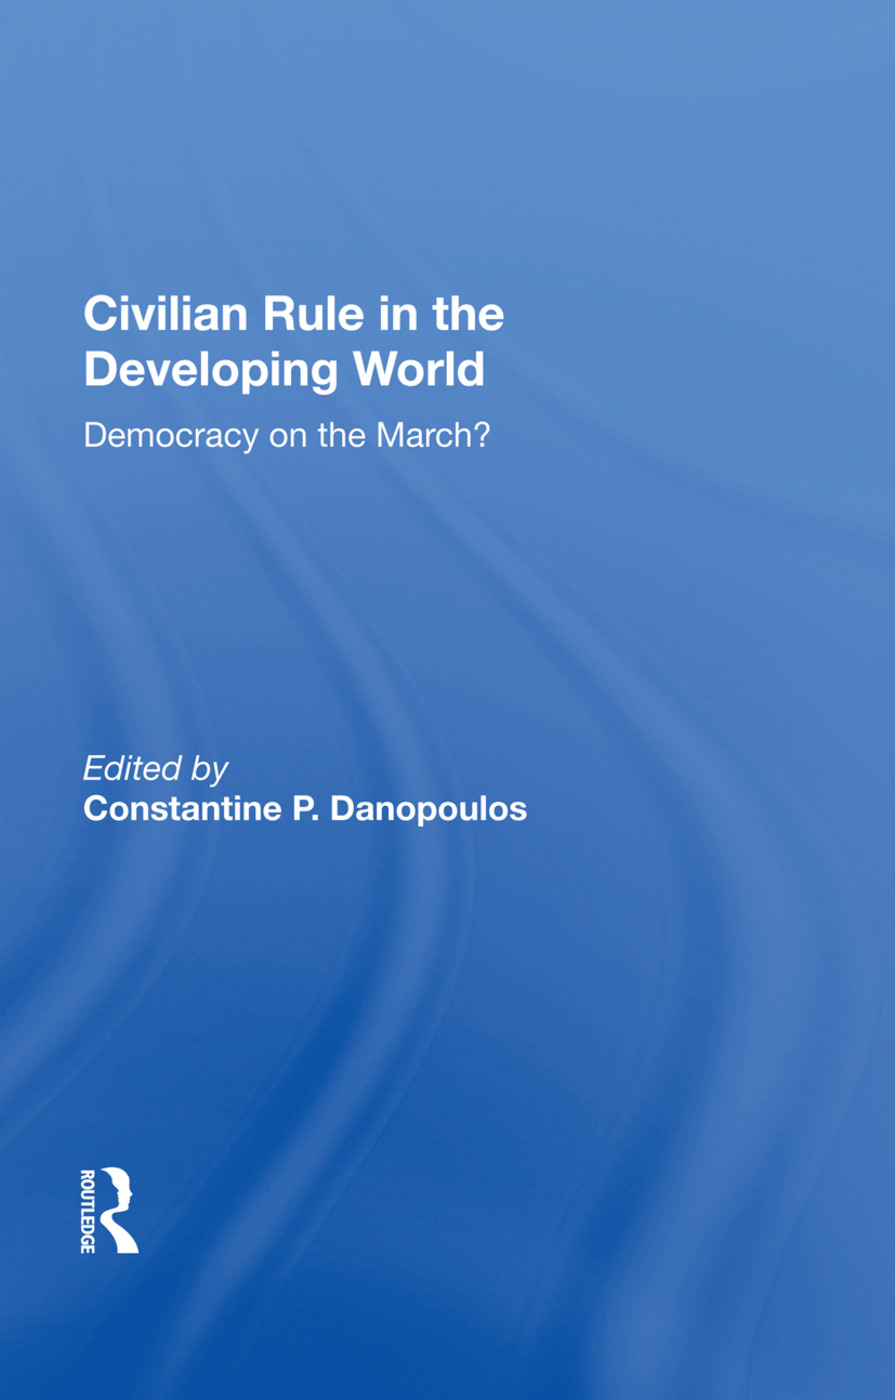 Civilian Rule in the Developing World